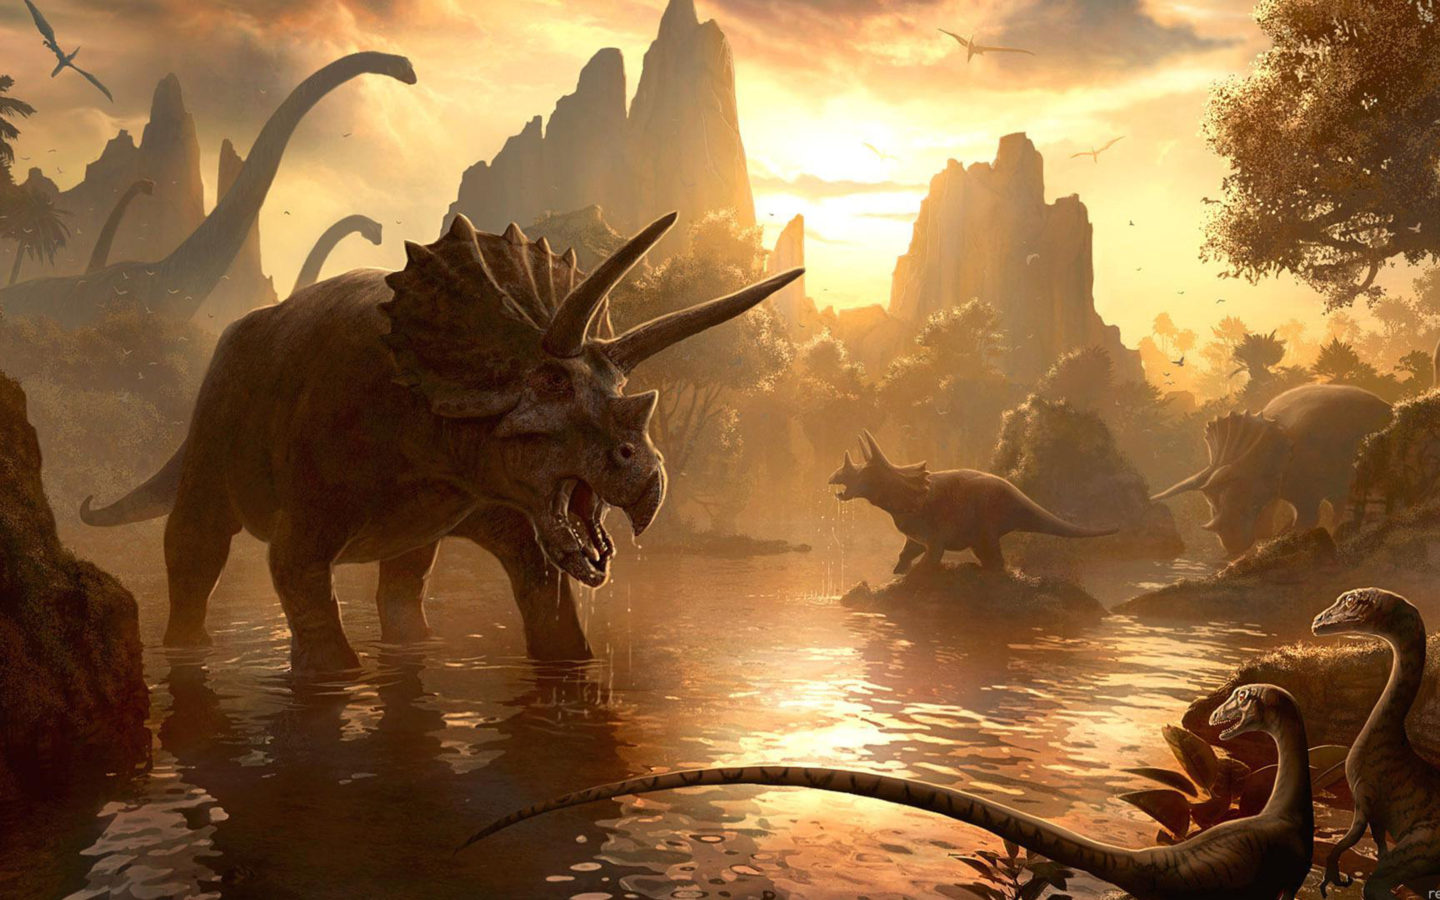 Free Download 3d Wallpaper For Android Tablet Animals Of The Past Ancient World Of Dinosaurs Desktop Hd